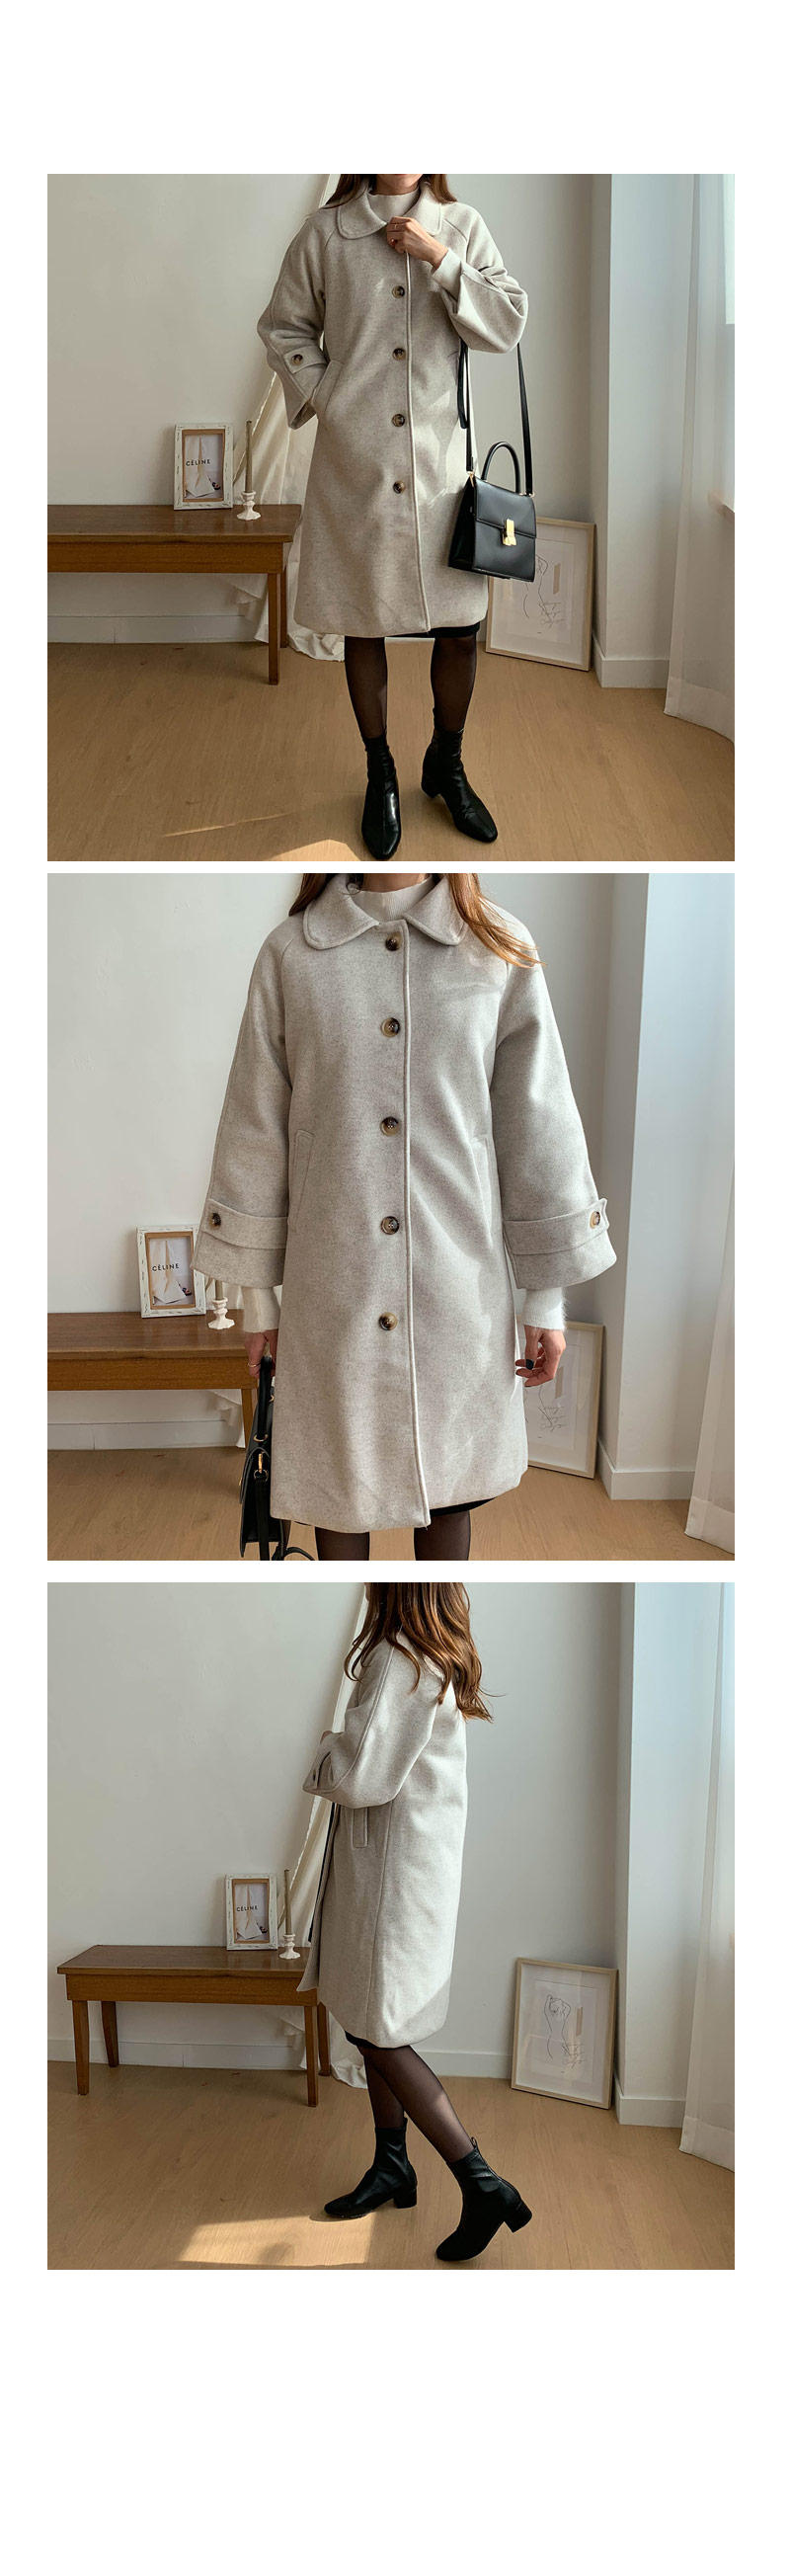 Boracay quilted coat